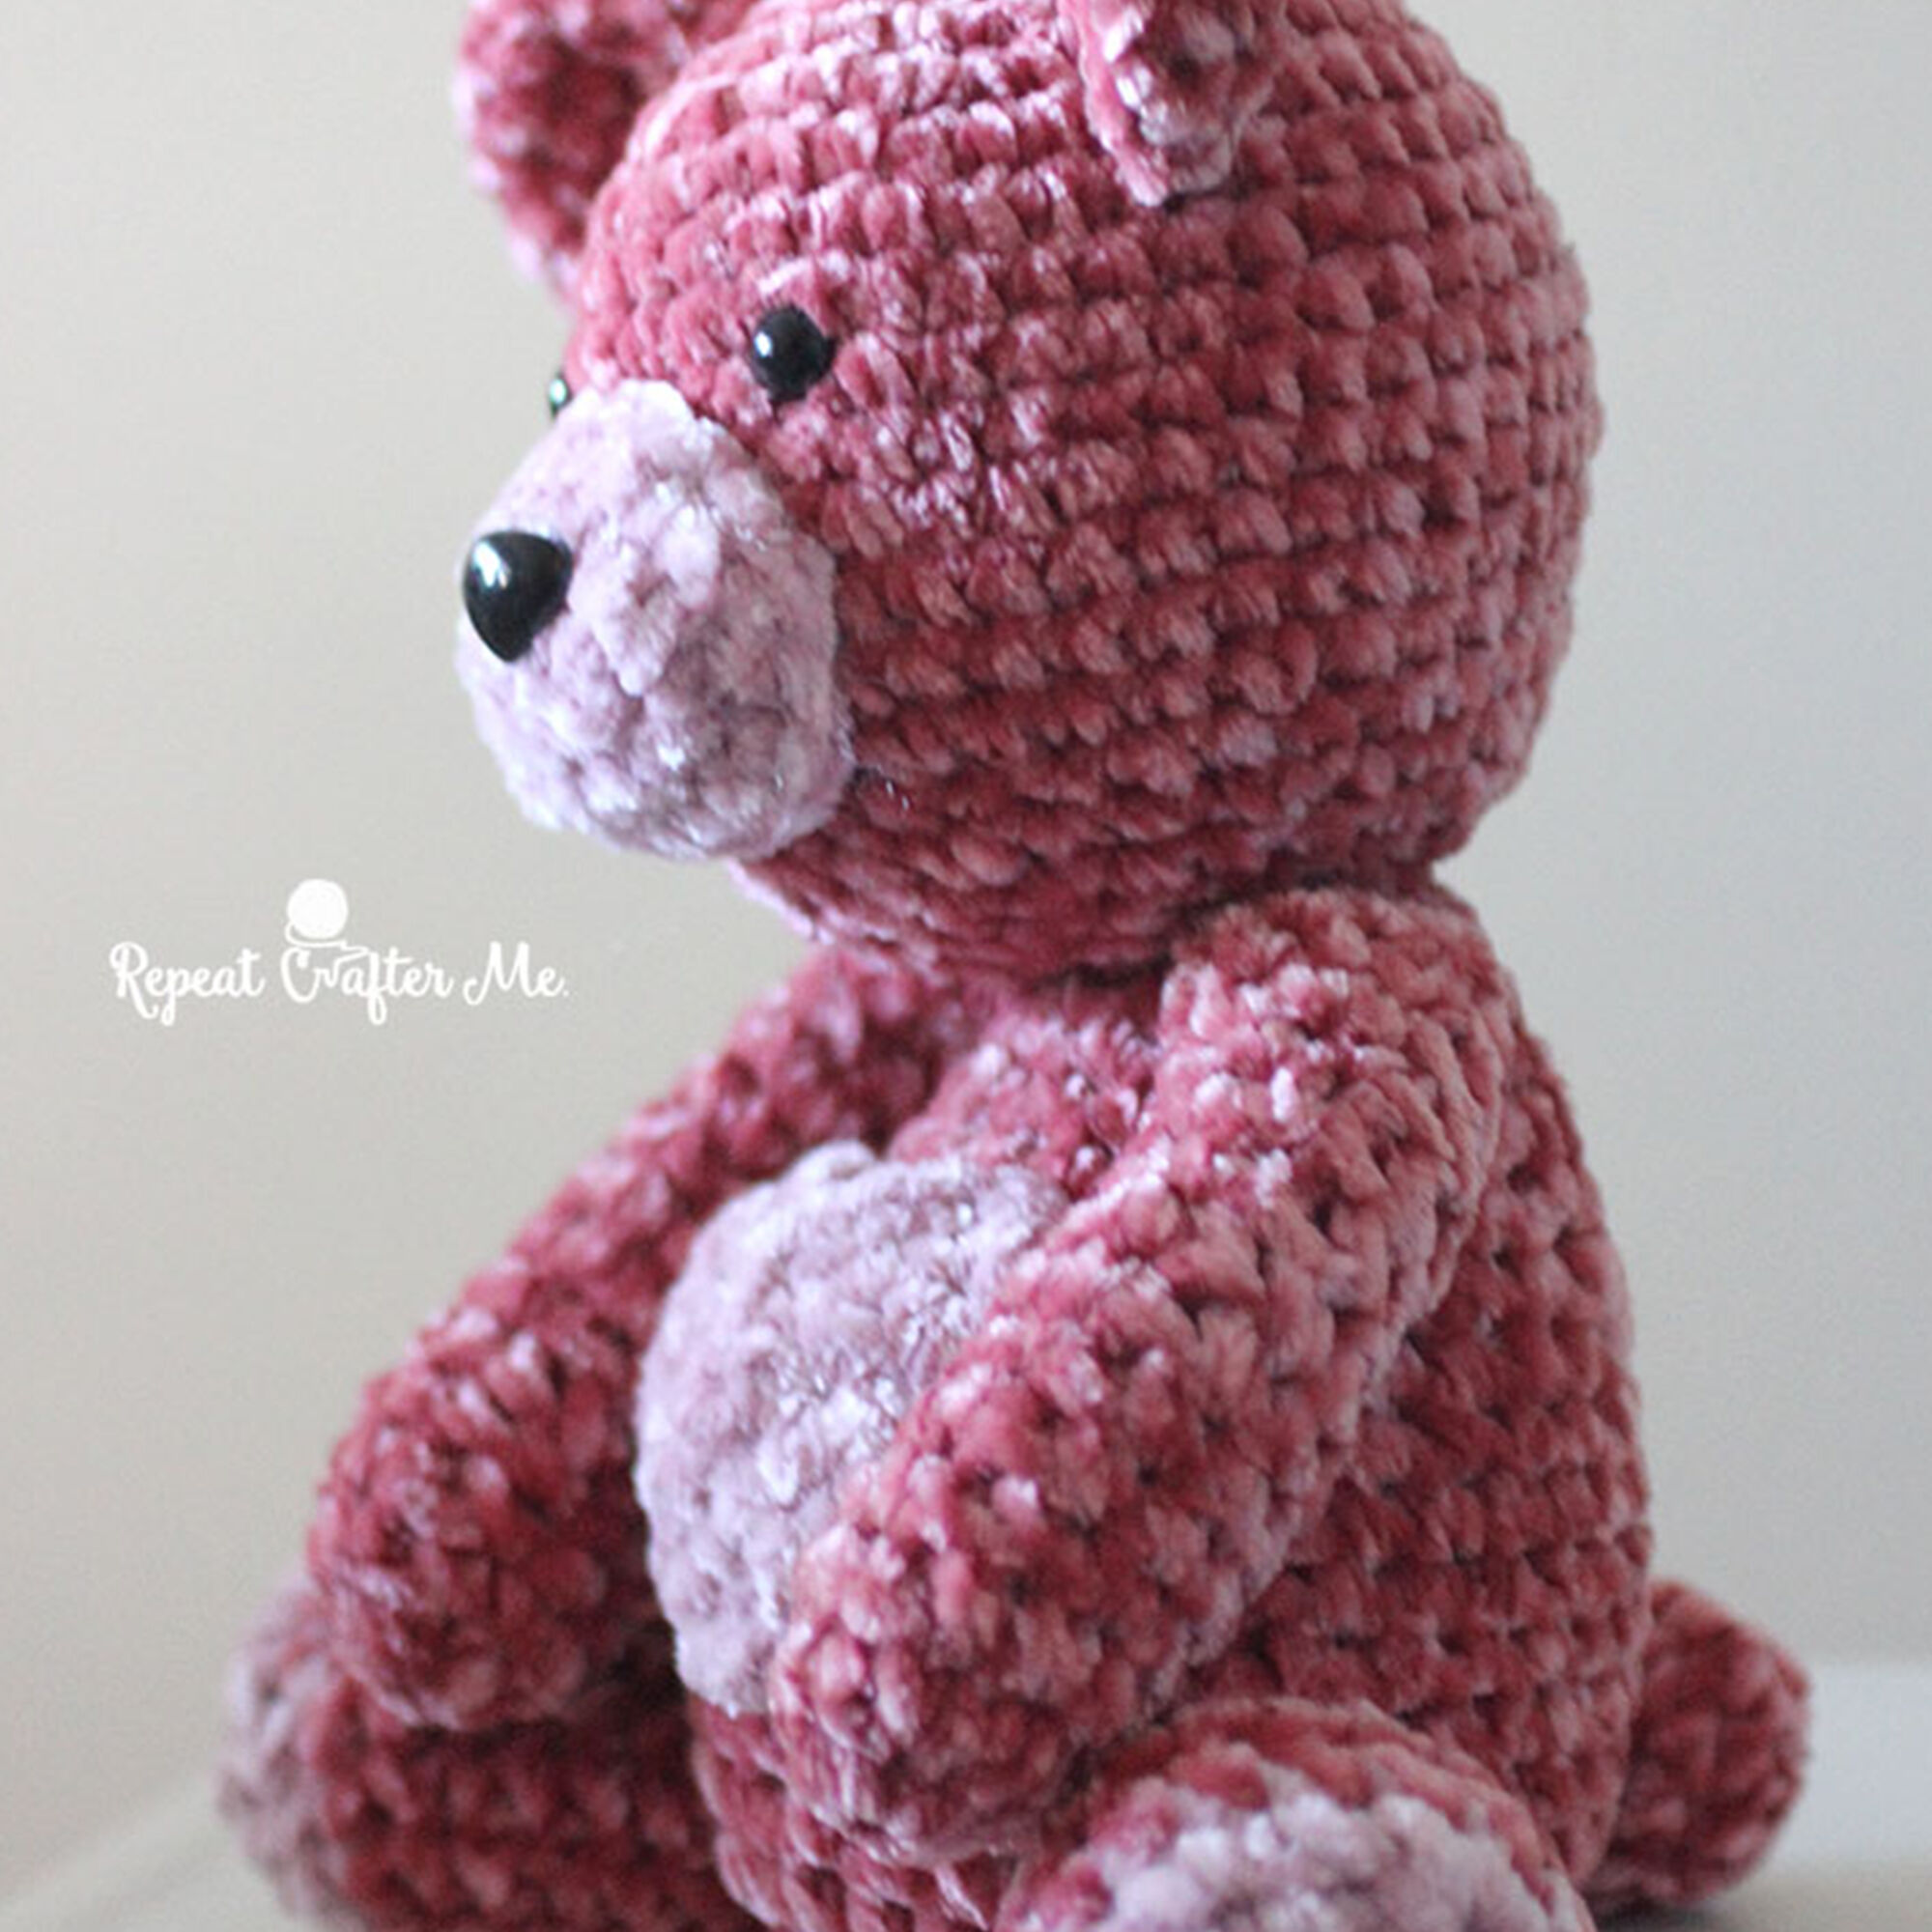 Crochet Bear PATTERN - Lucas the Teddy - Classic Teddy Bear ... | 2000x2000